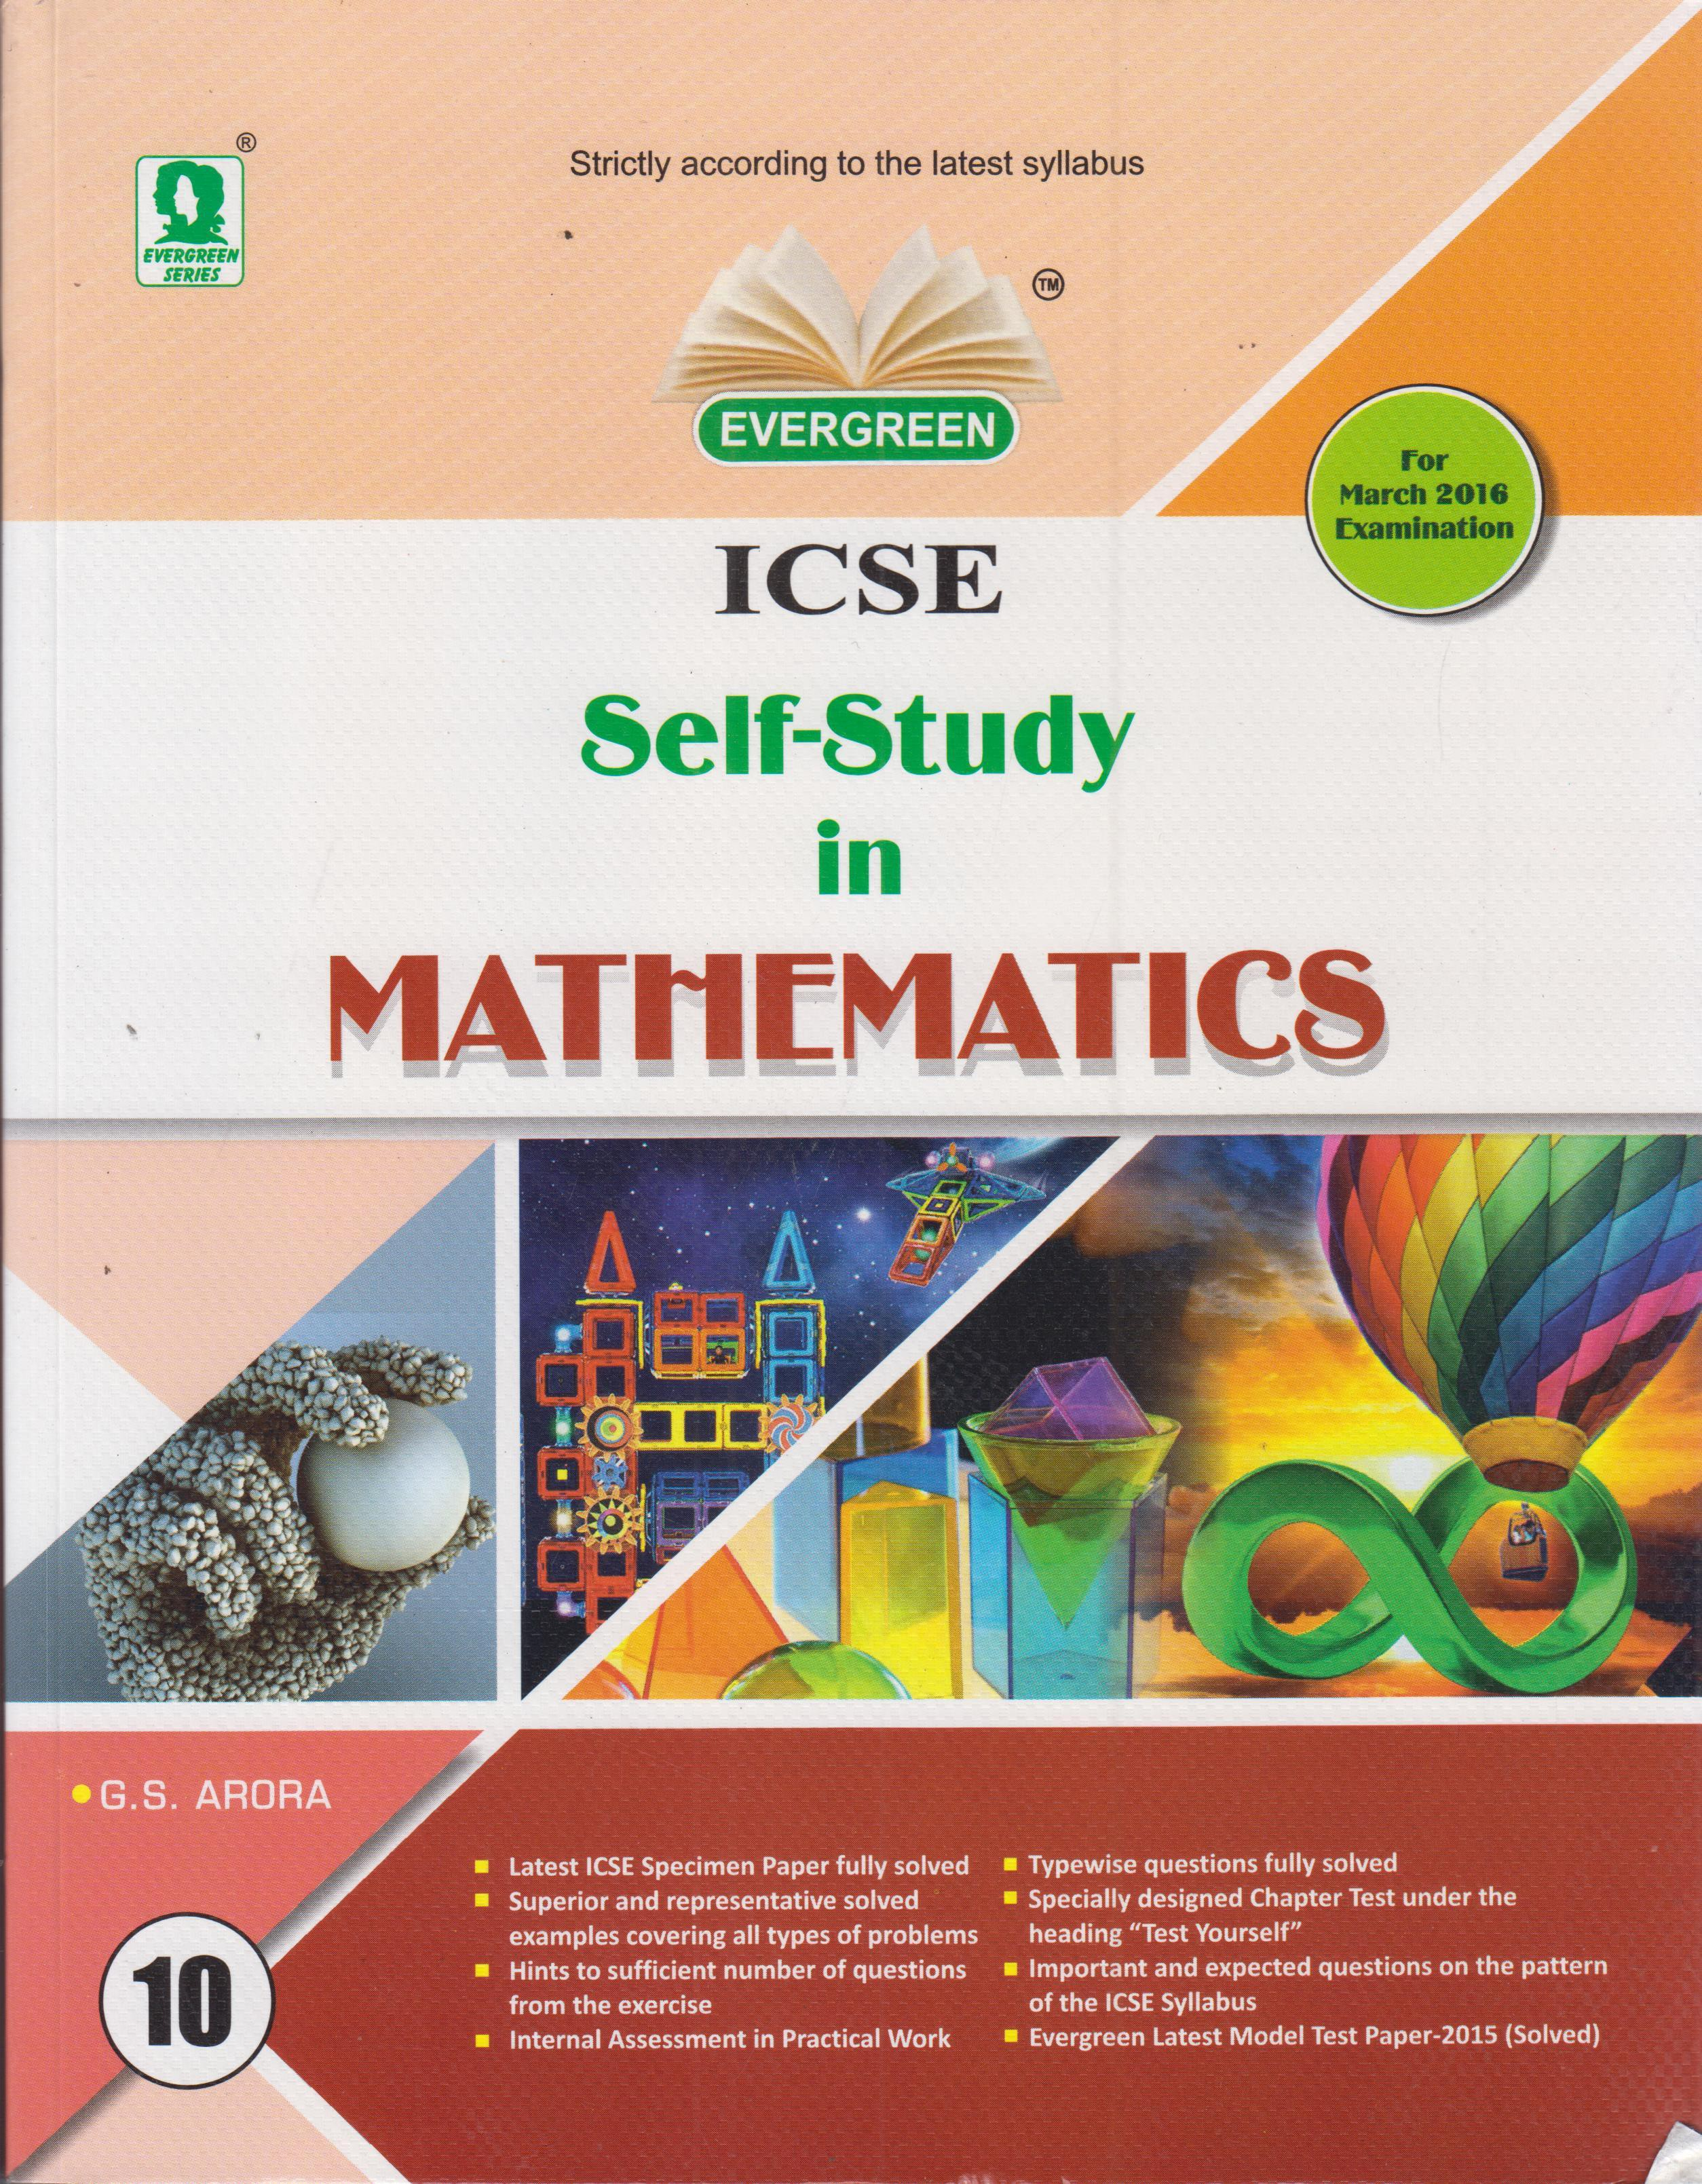 Evergreen ICSE SelfStudy in Mathematics Class10 (English) 01 Edition (Paperback) price in India.